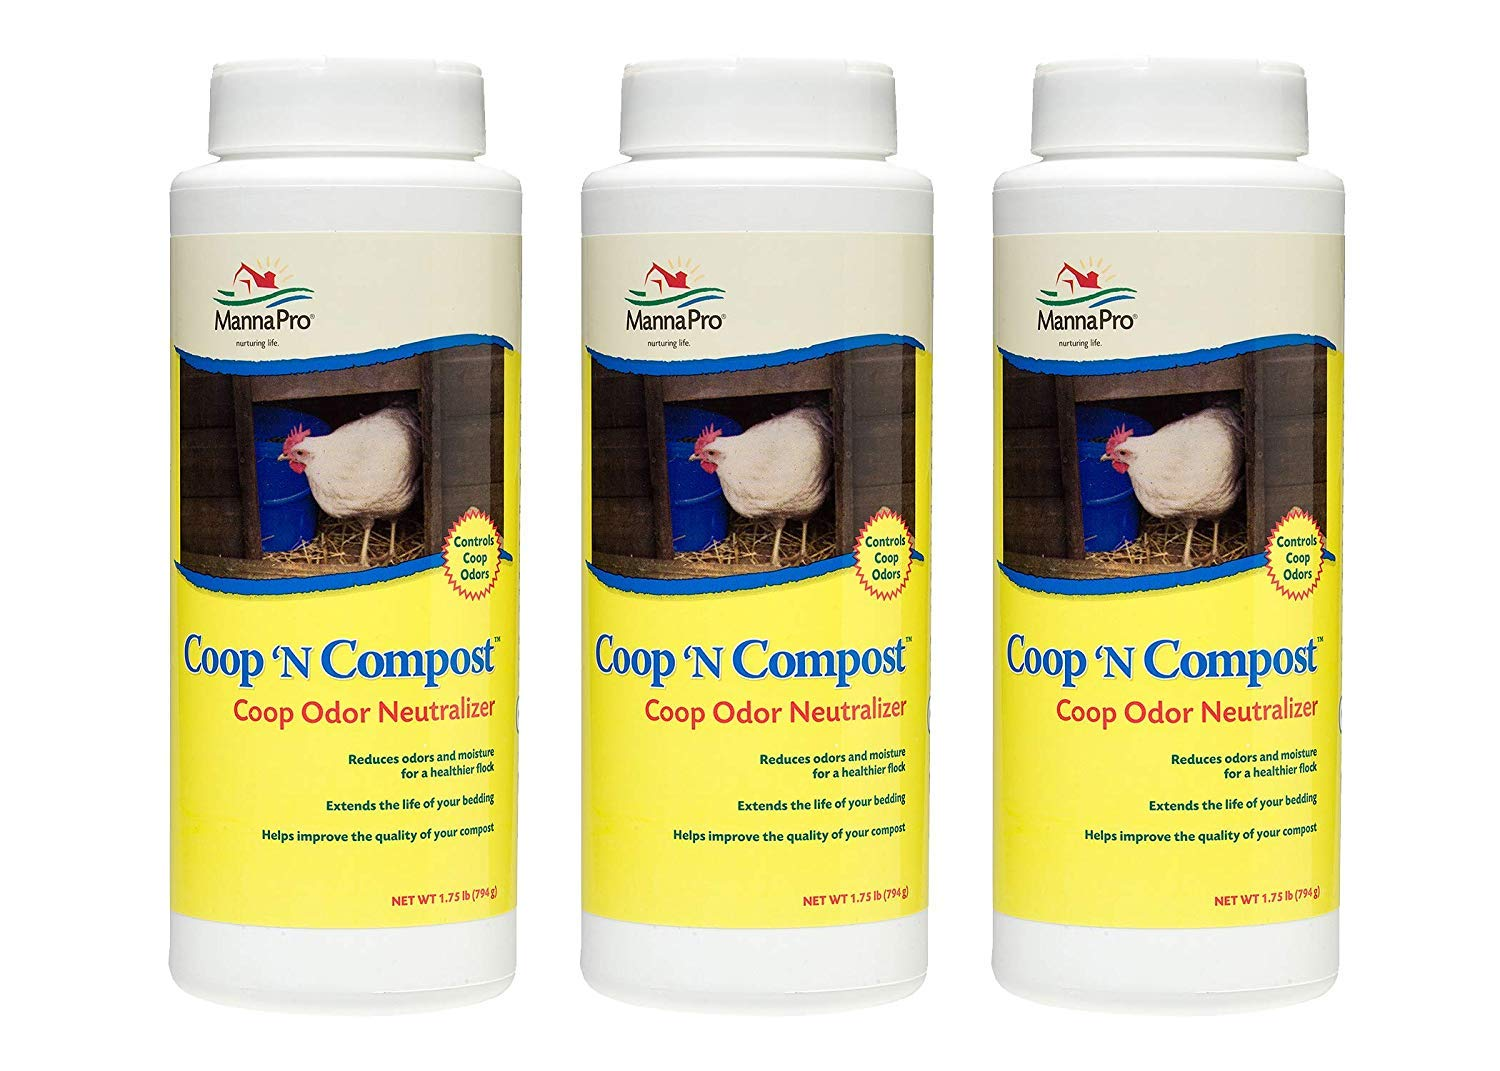 Manna Pro Coop 'N Compost Odor Neutralizer (Pack of 3) by Manna Pro